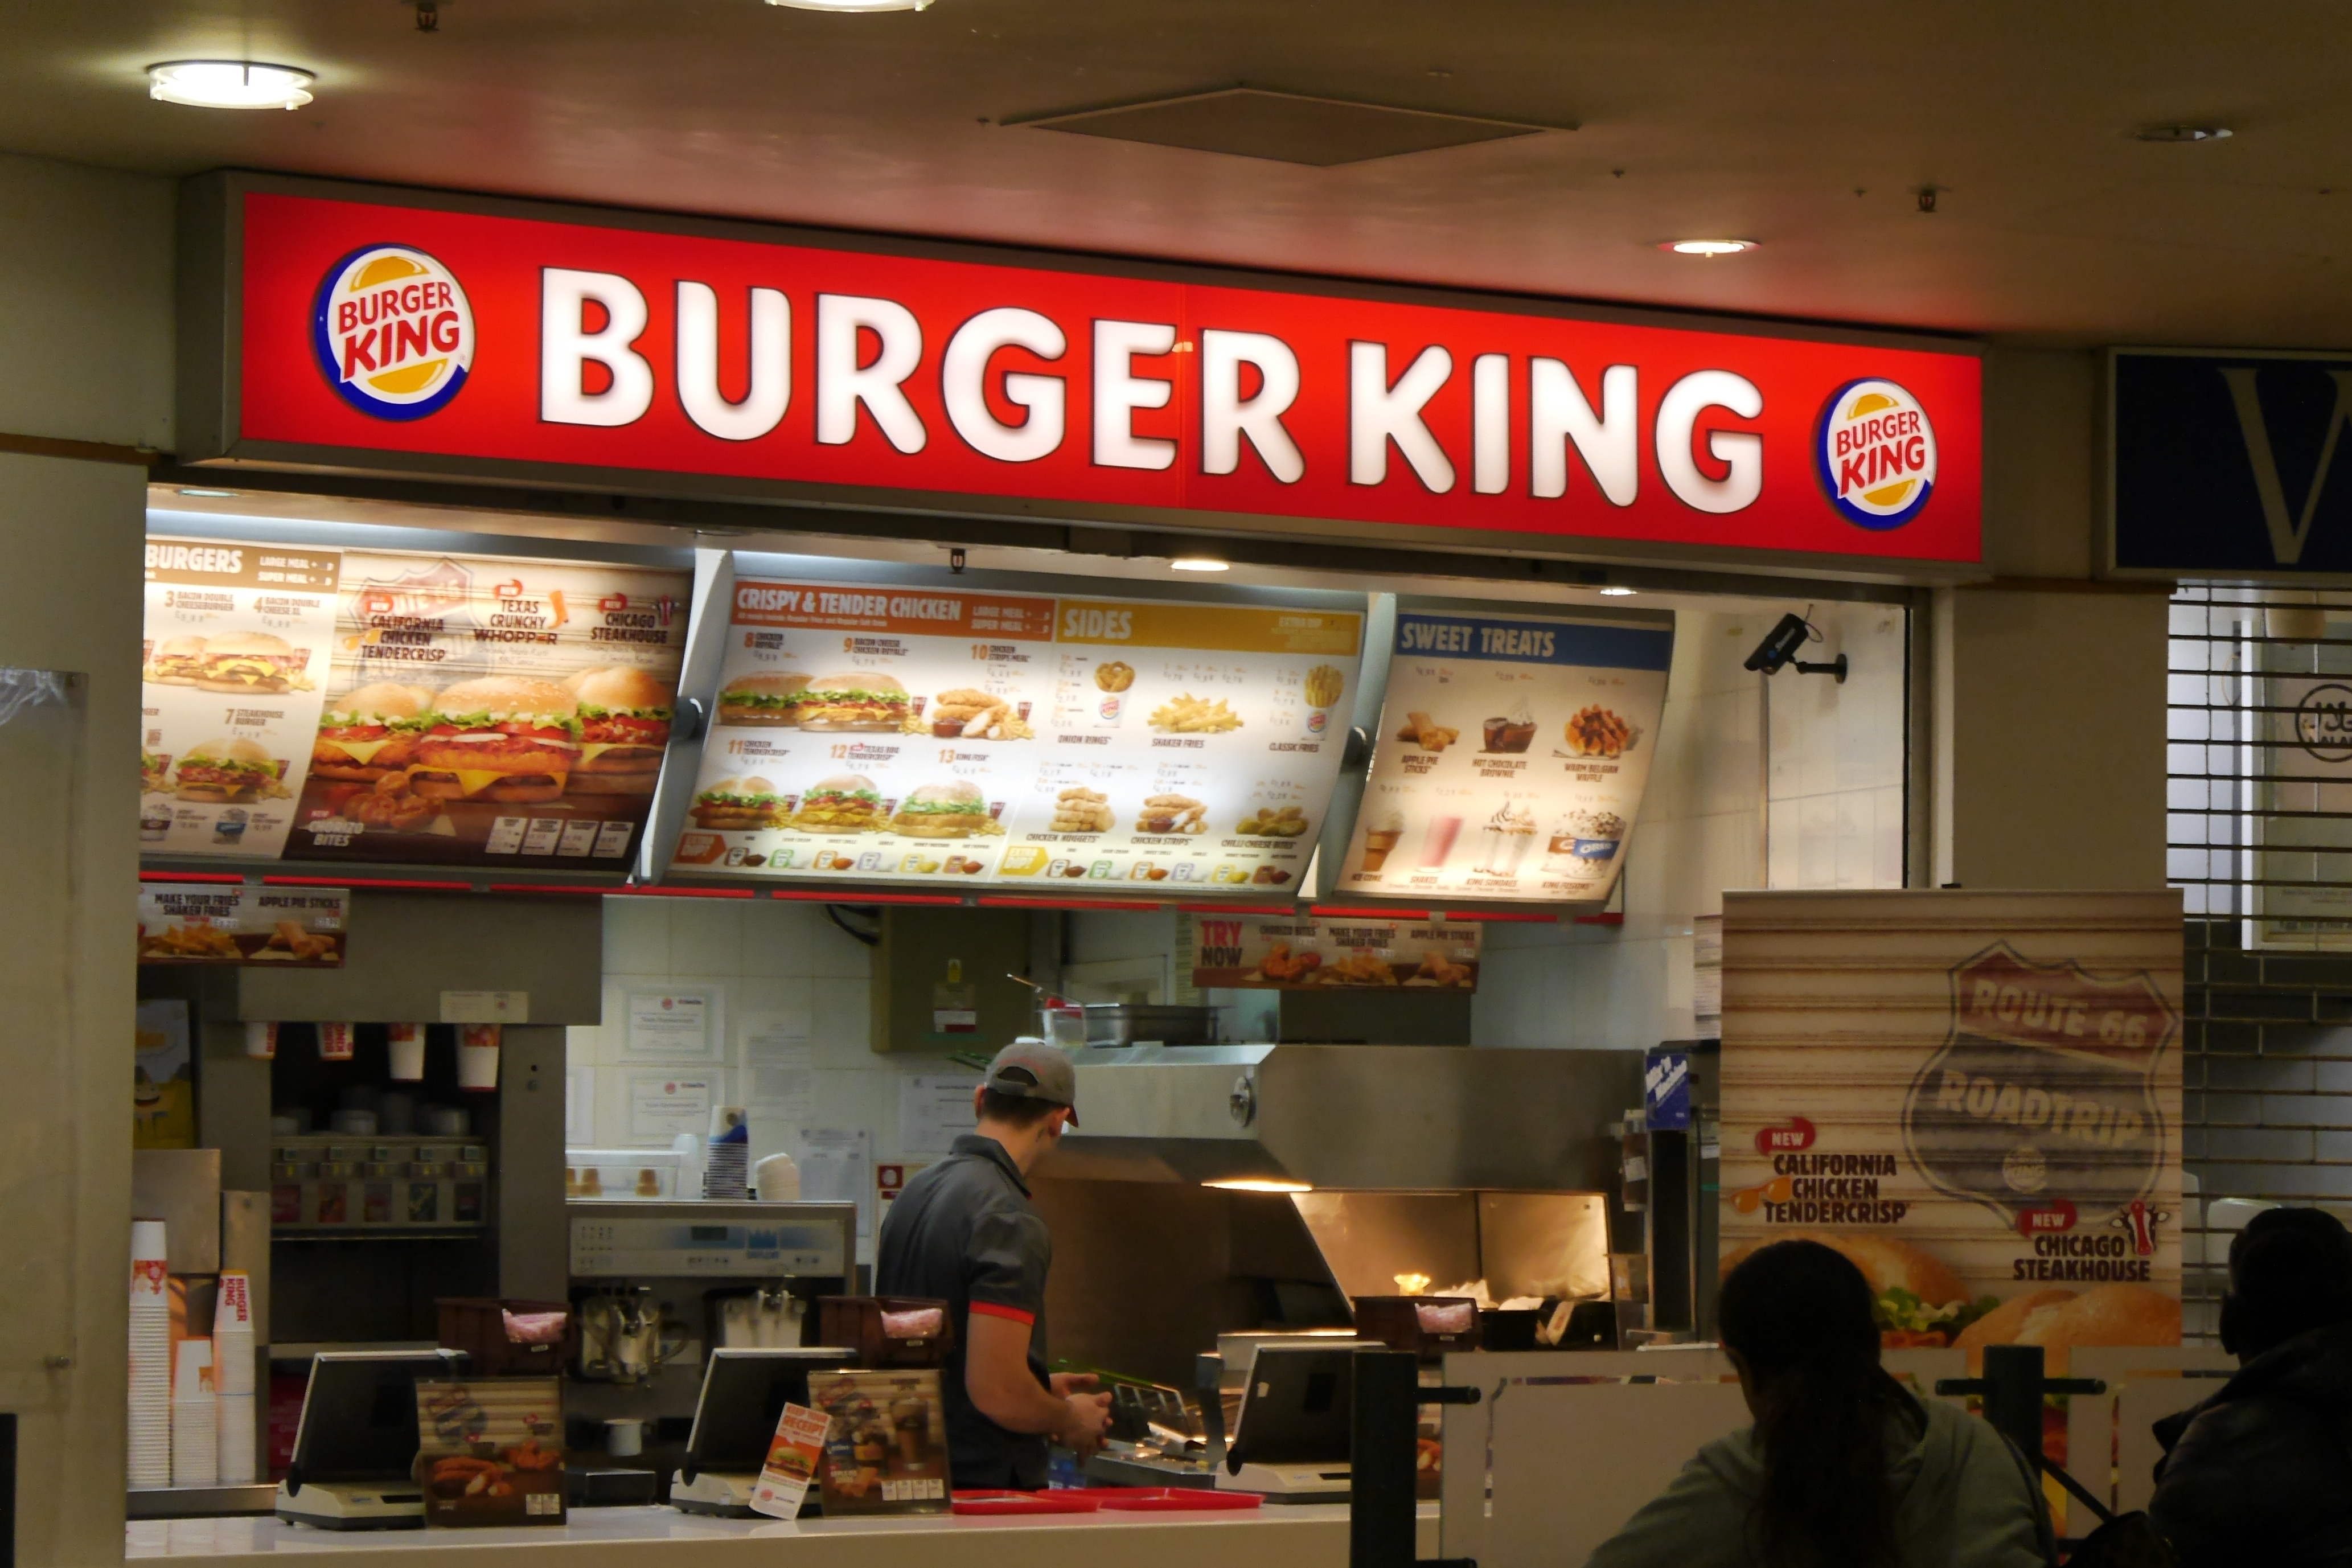 burger king economic forces Introduction burger king was founded by david edgerton and james mclemore in 04th of december 1954 • economic forces • natural forces.